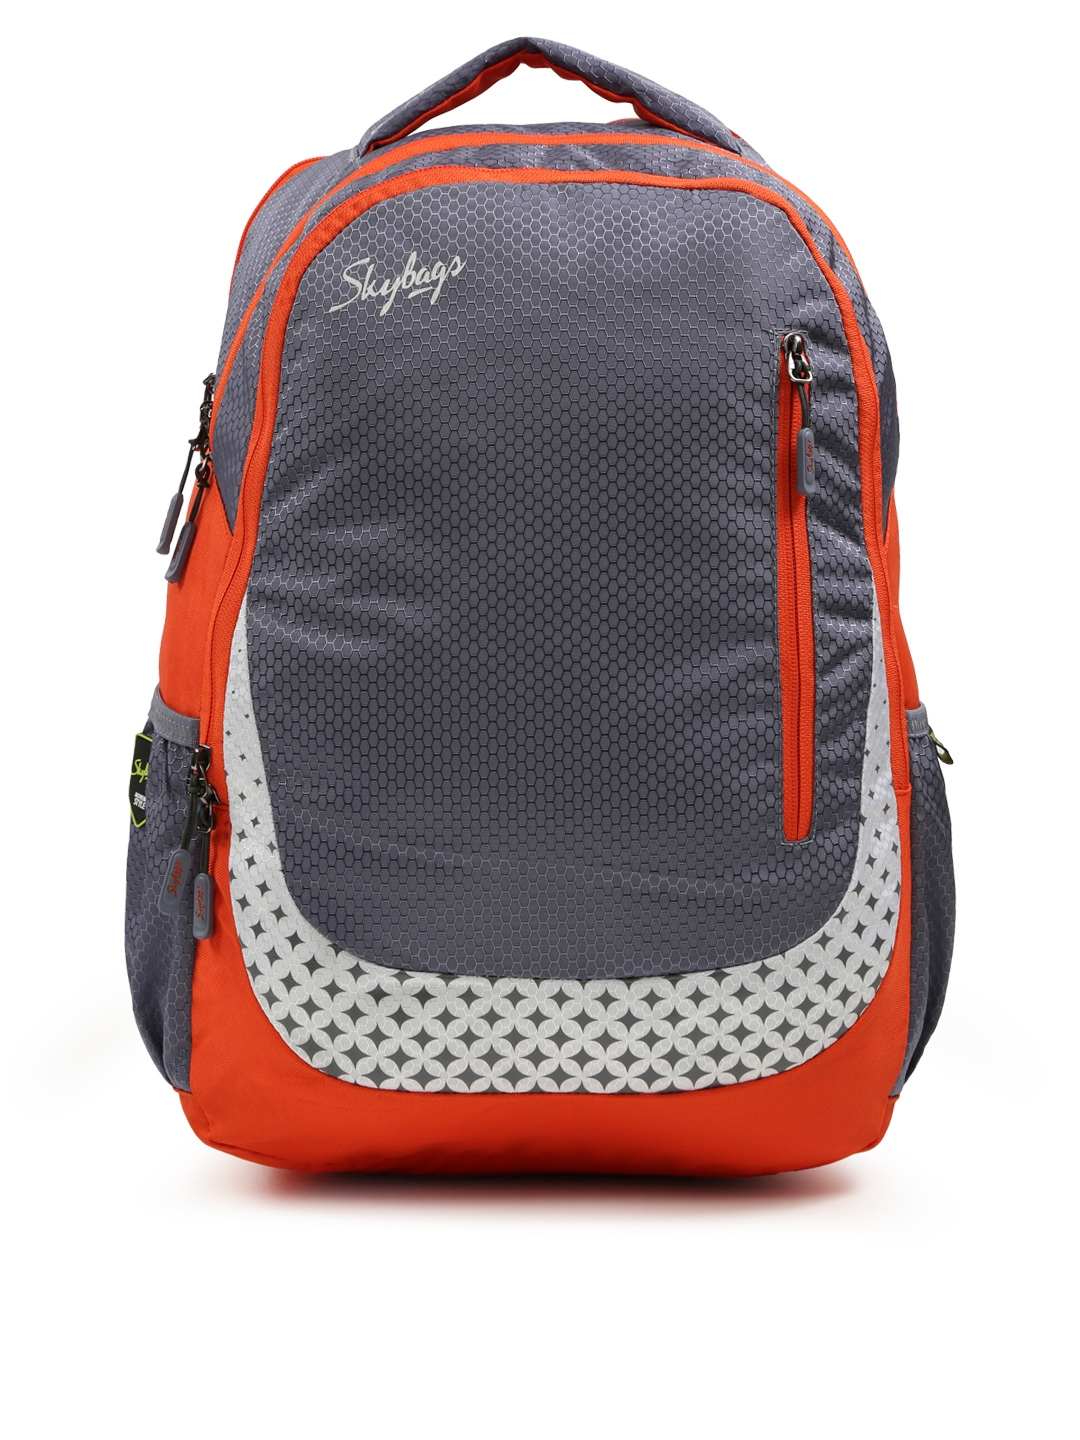 Skybags Unisex Orange   Grey FOOTLOOSE BLITZ PLUS 02 Printed Laptop Backpack